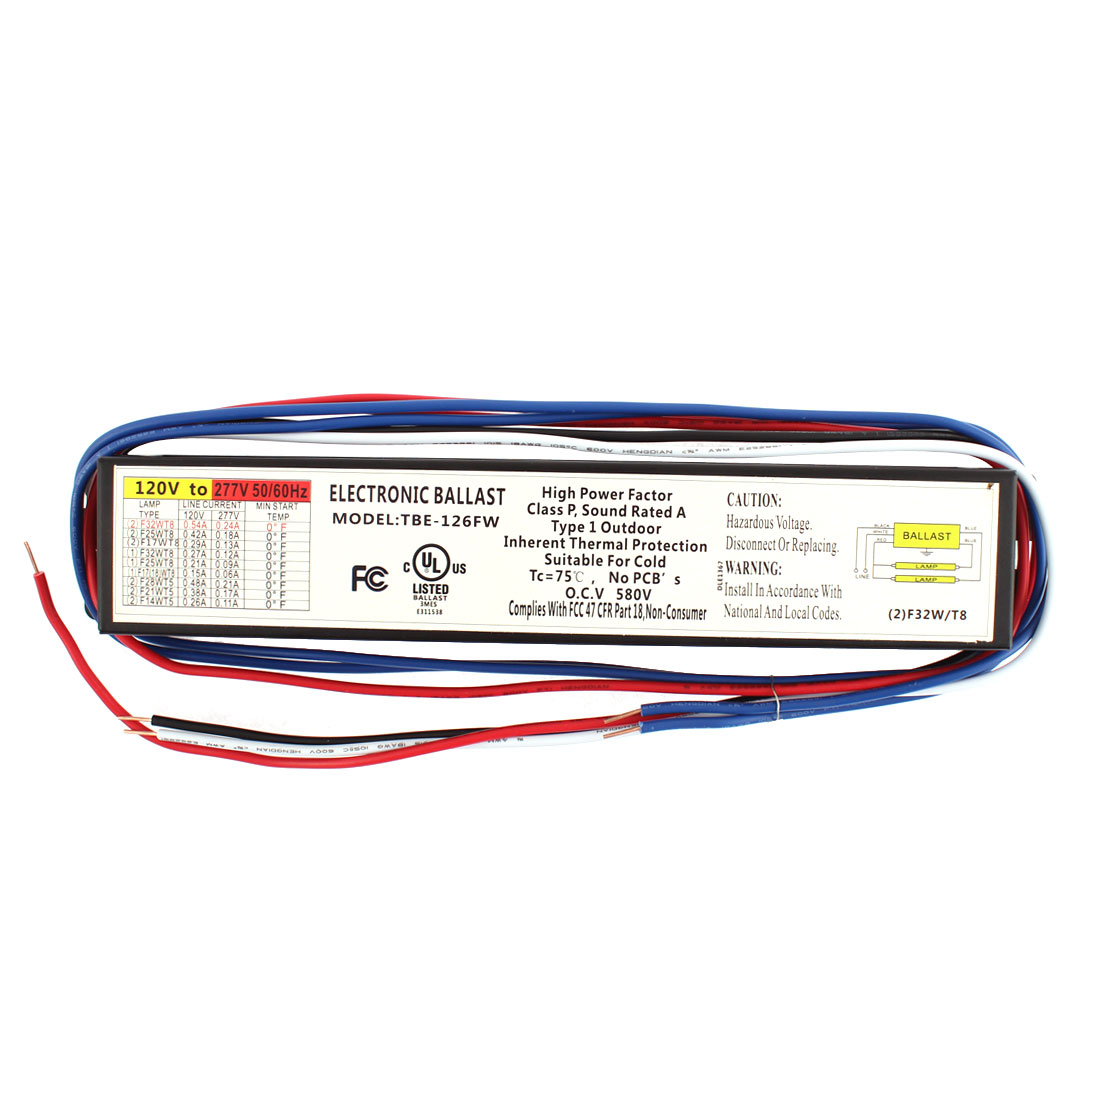 UL Listed AC120V-277V F32T8 32W T8 Lamp Electronic Ballast for 1 or 2 T8 Fluorescent Light